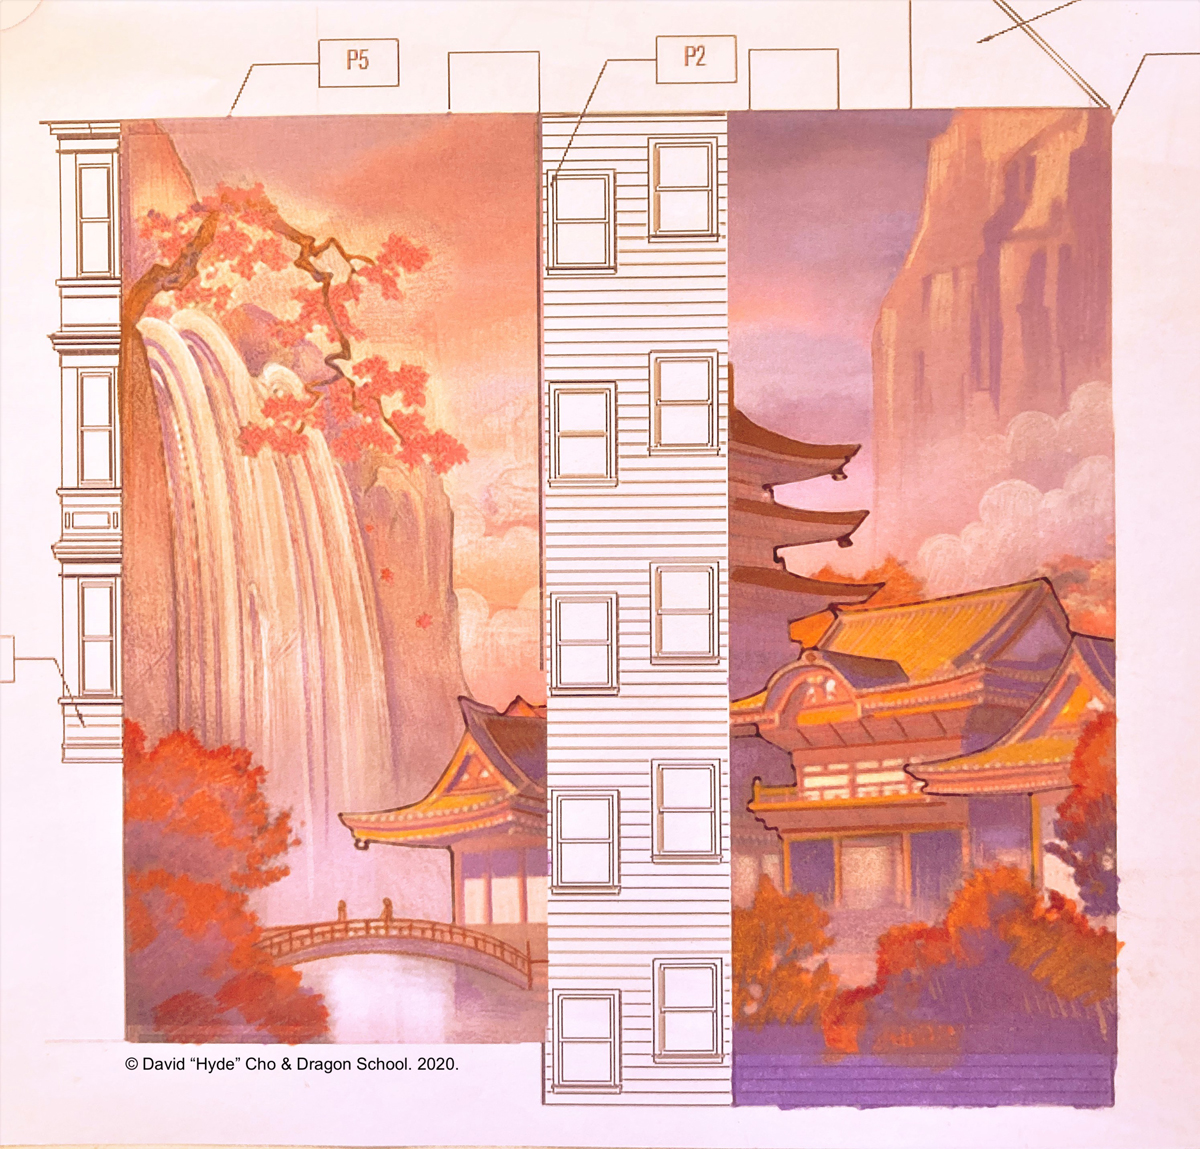 chinatown mural woh hei yuen 900 jackson 1201 powell san francisco request for artwork proposals